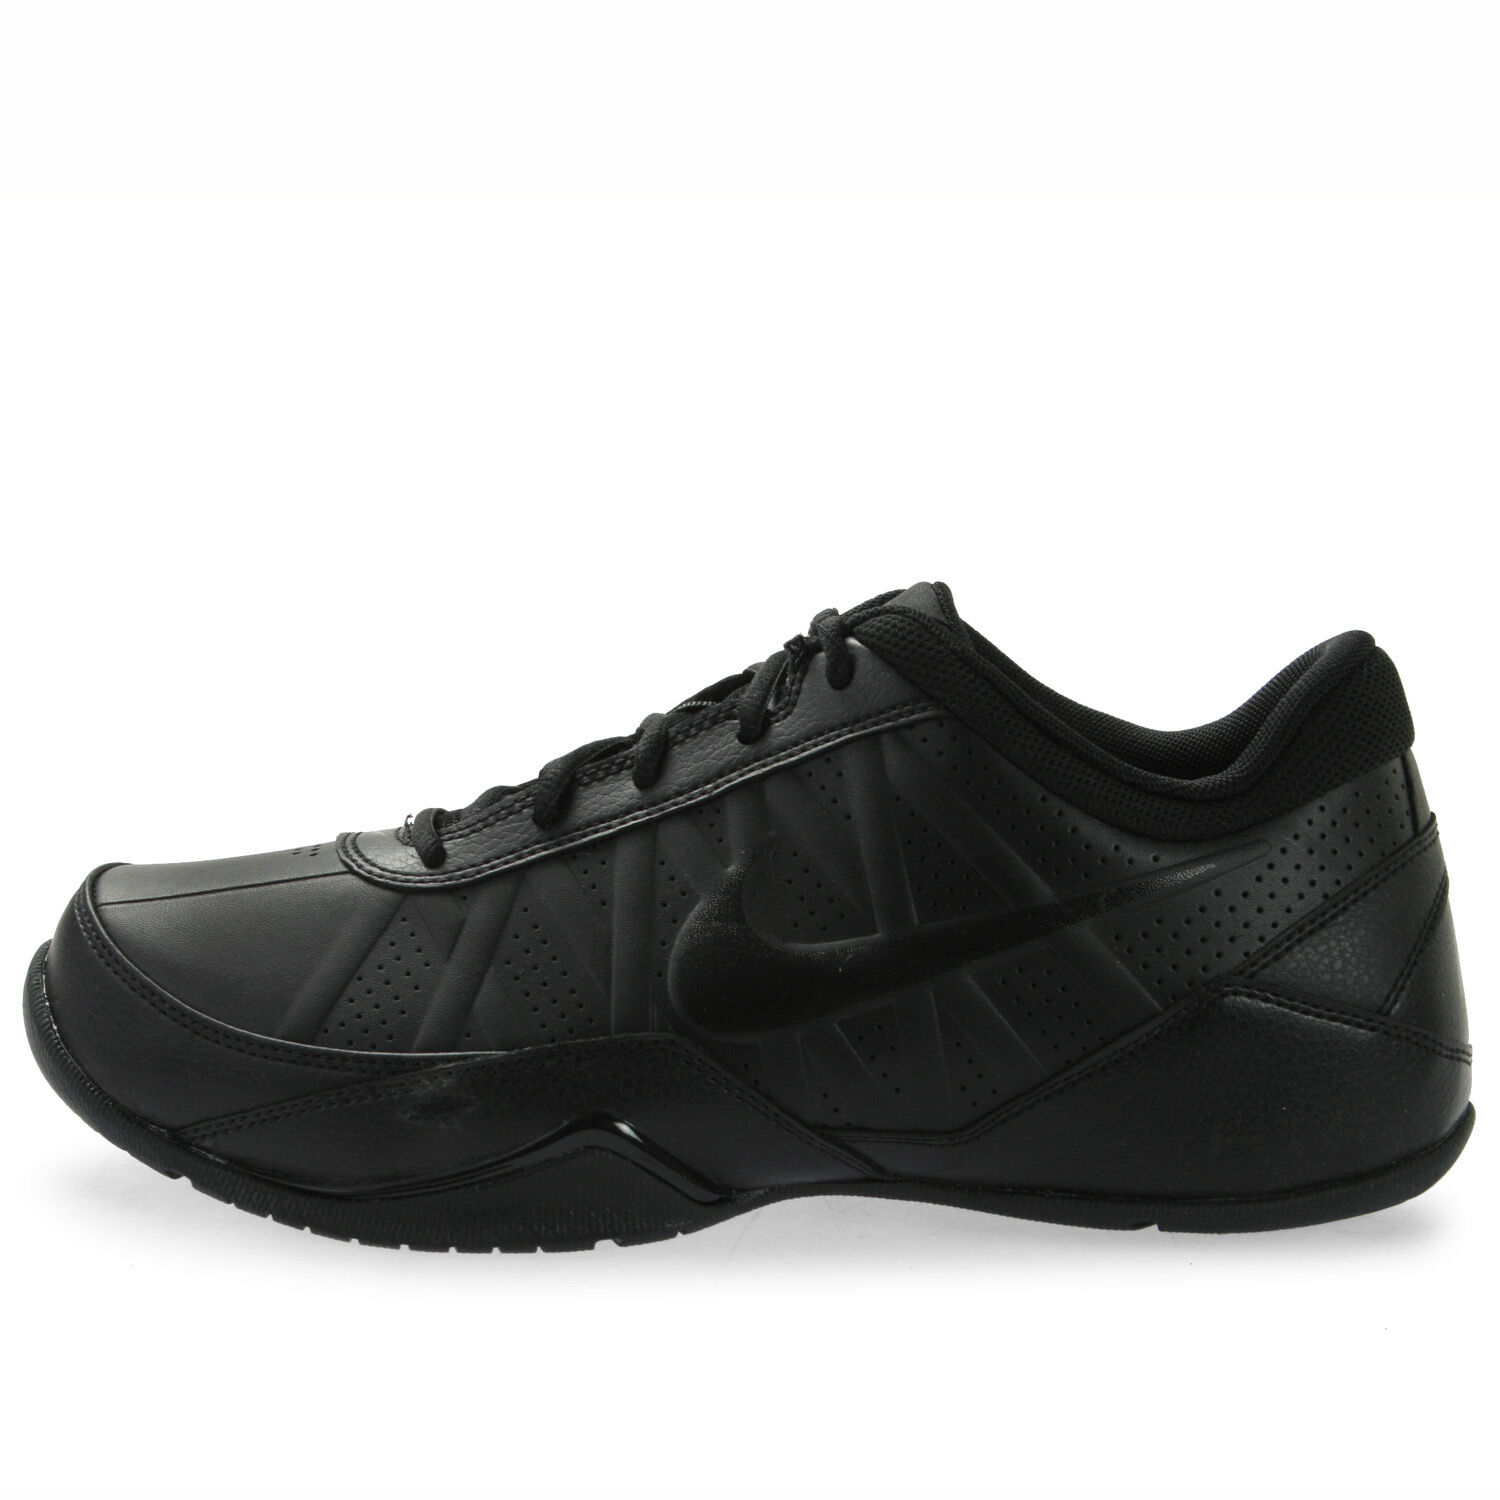 NIKE AIR RING LEADER LOW Mens 7 Black LEATHER NEW Comfortable and good-looking